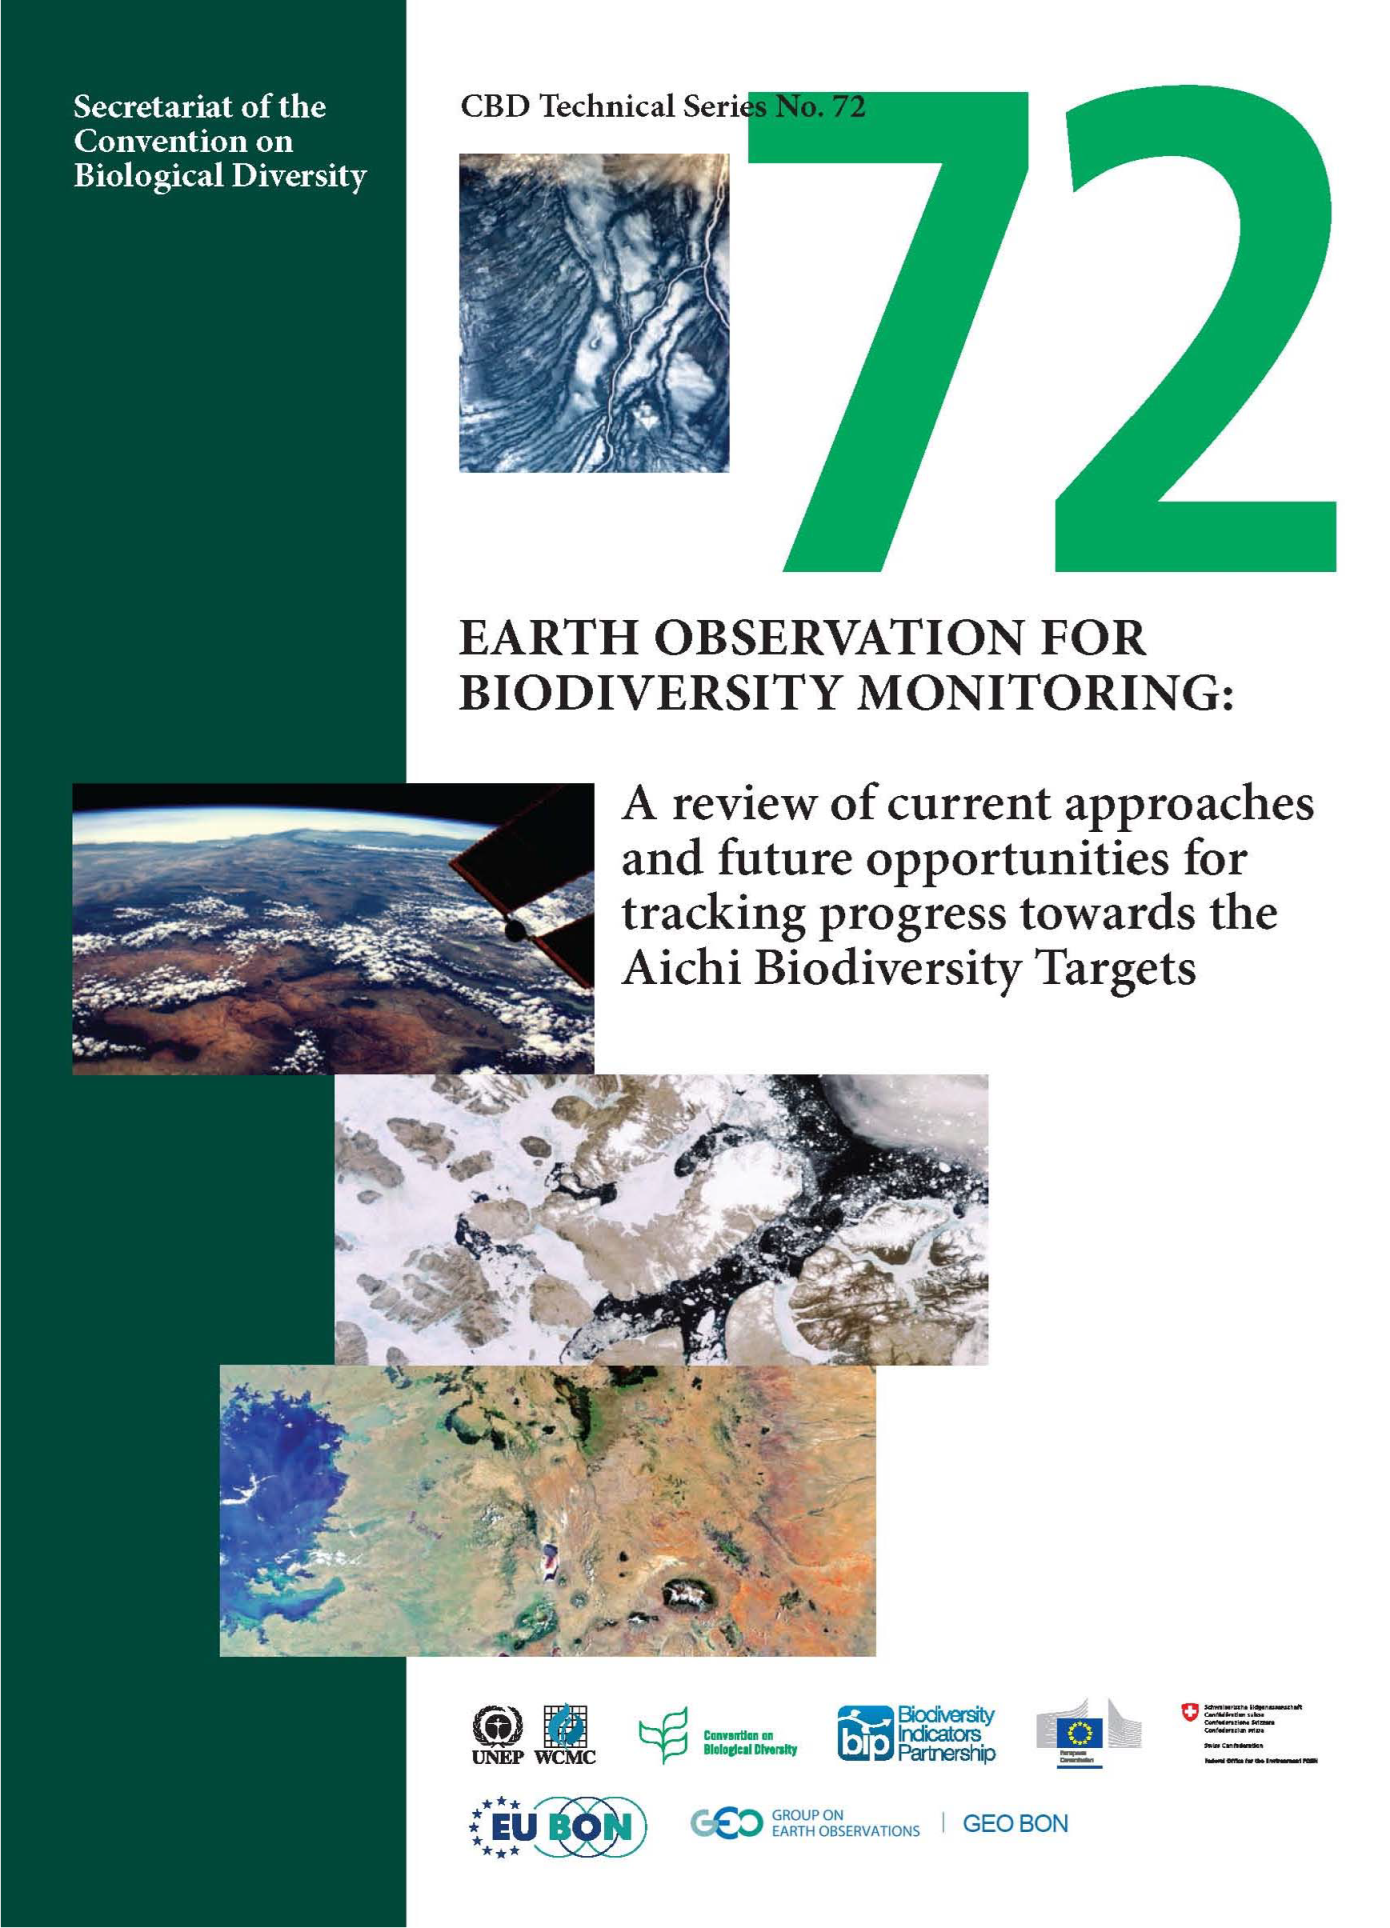 Capa da Earth Observation for Biodiversity Monitoring: A review of current approaches and future opportunities for tracking progress towards the Aichi Biodiversity Targets